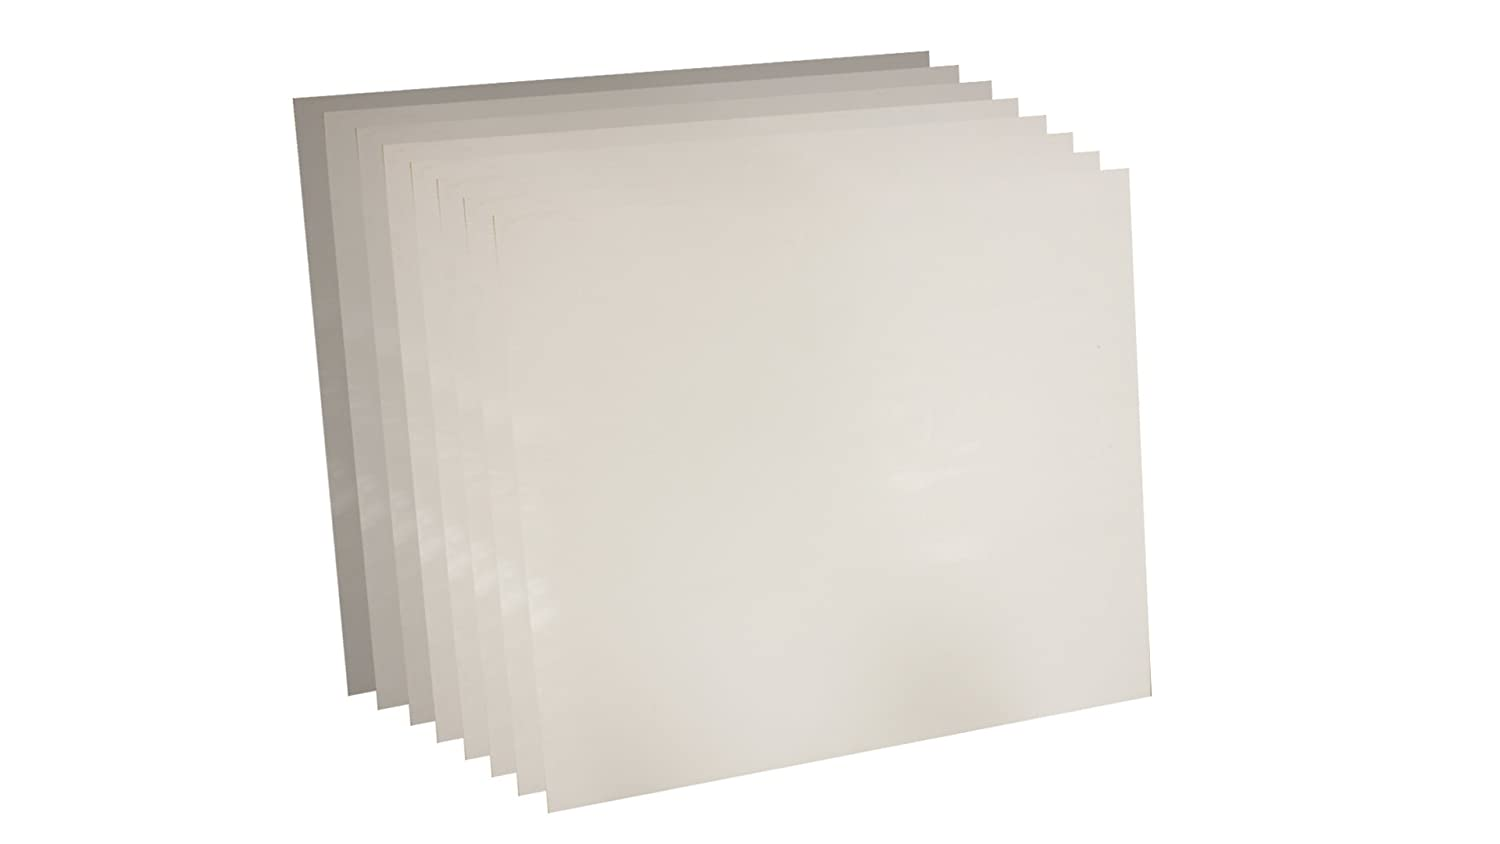 Sur-Seal Inc 1//16 Thick 12 x 12 Pack of 8 Sterling Seal 7530.06212x12x8 White Virgin Teflon 7530 Sheet Pack of 8 1//16 Thick 12 x 12 of NJ